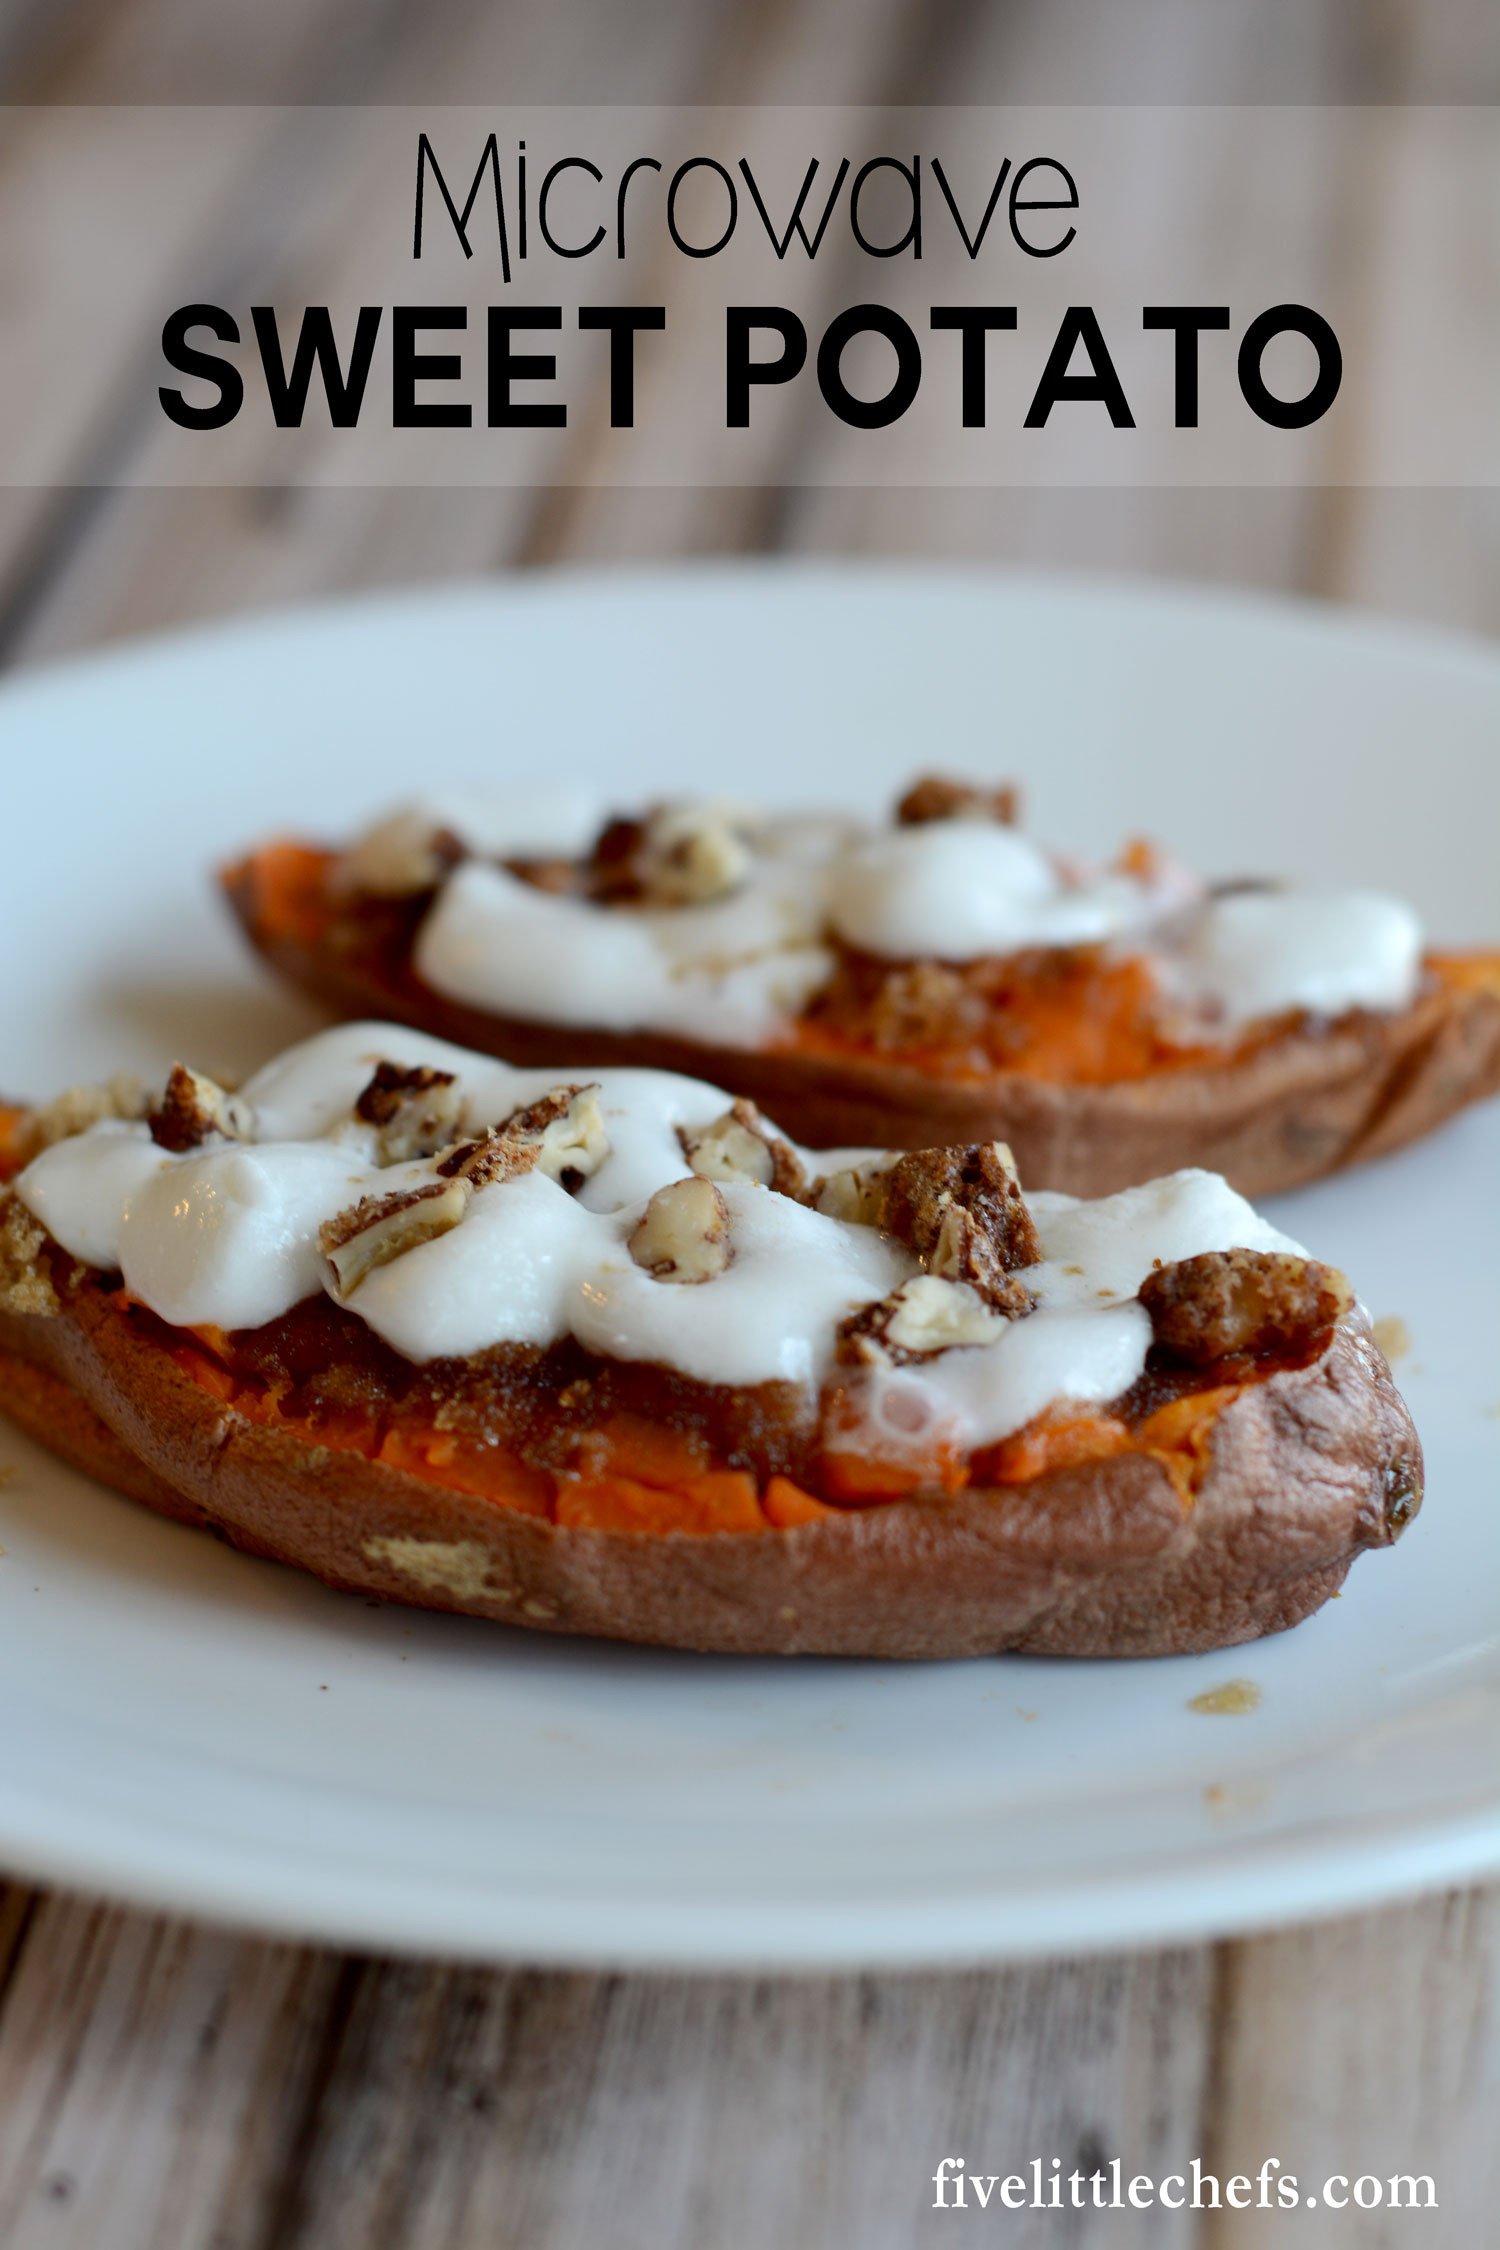 Baked Sweet Potato Microwave  microwave baked sweet potatoes